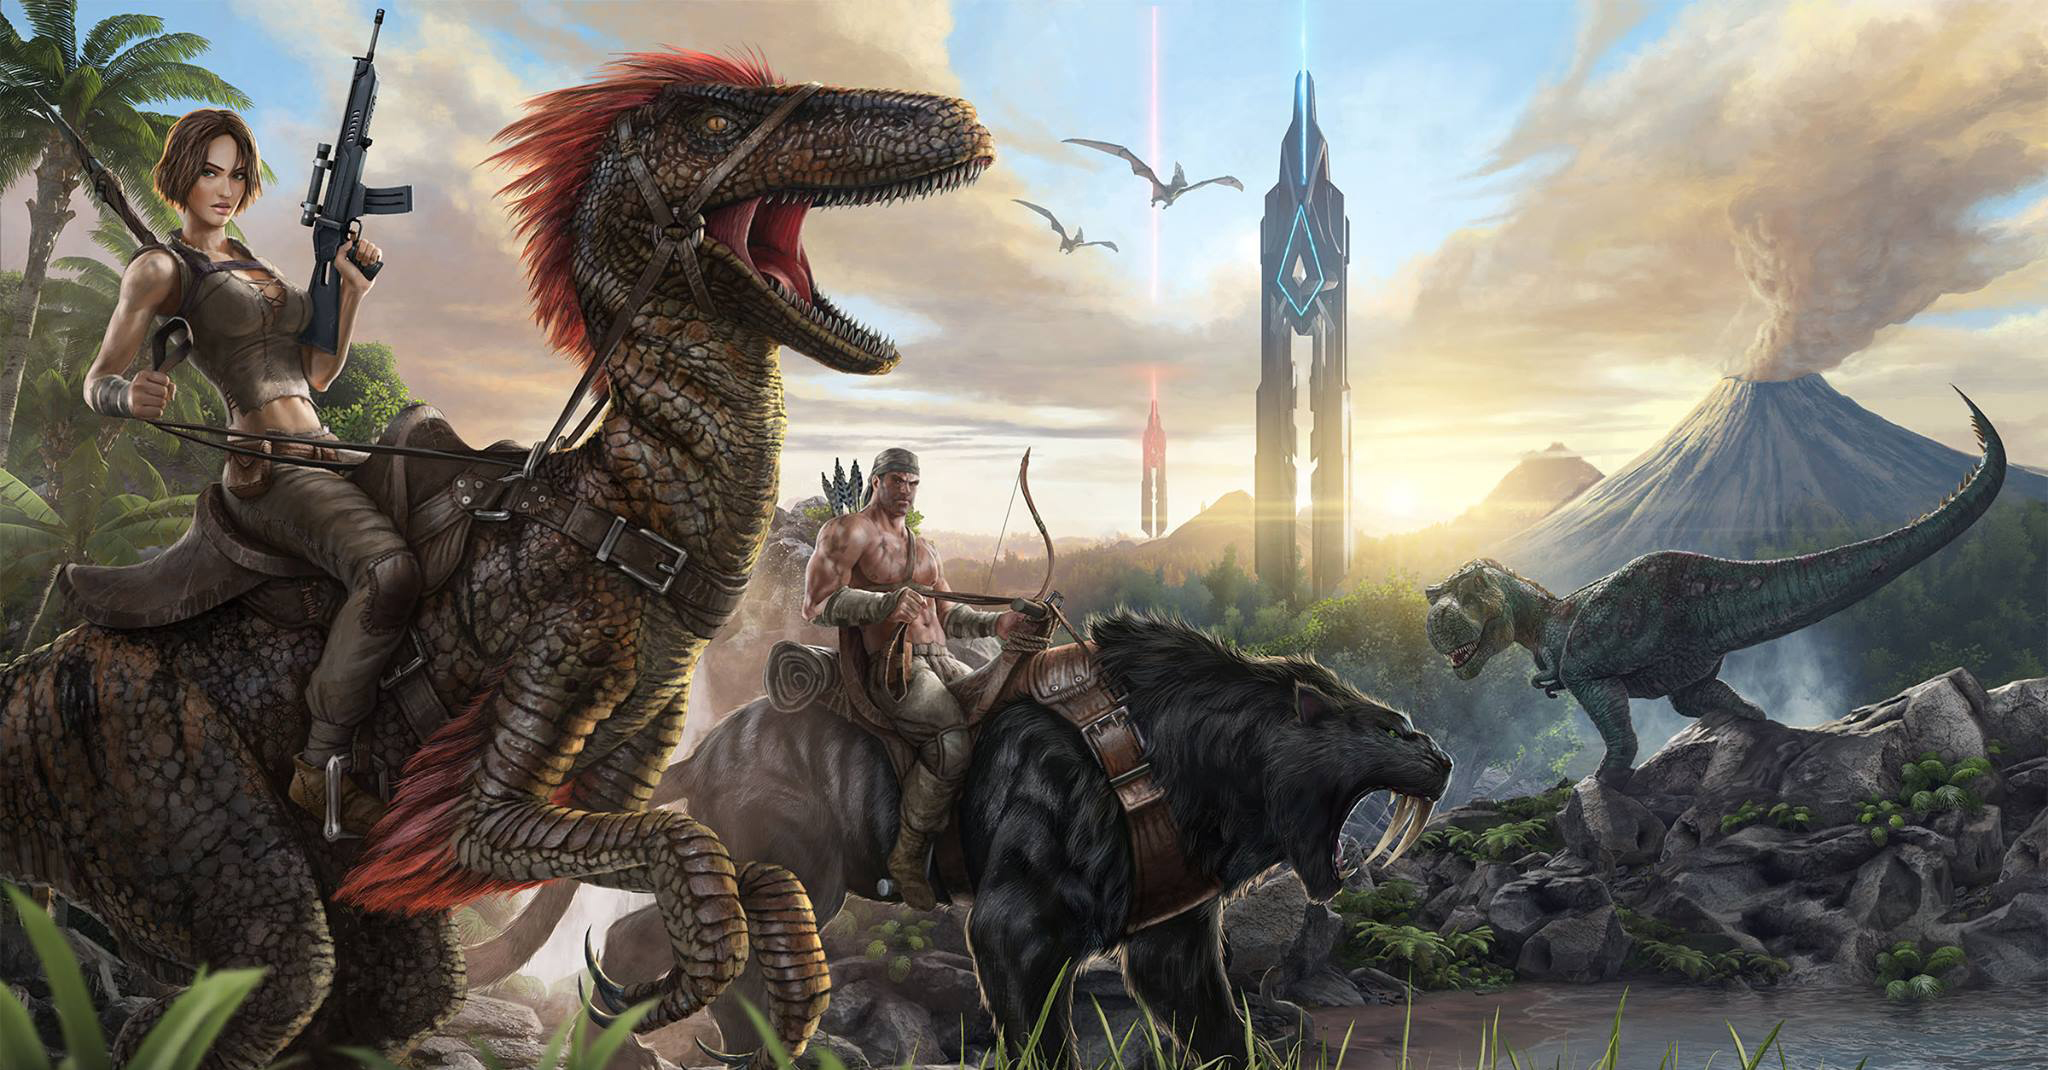 NVIDIA Ansel Available Now In ARK: Survival Evolved